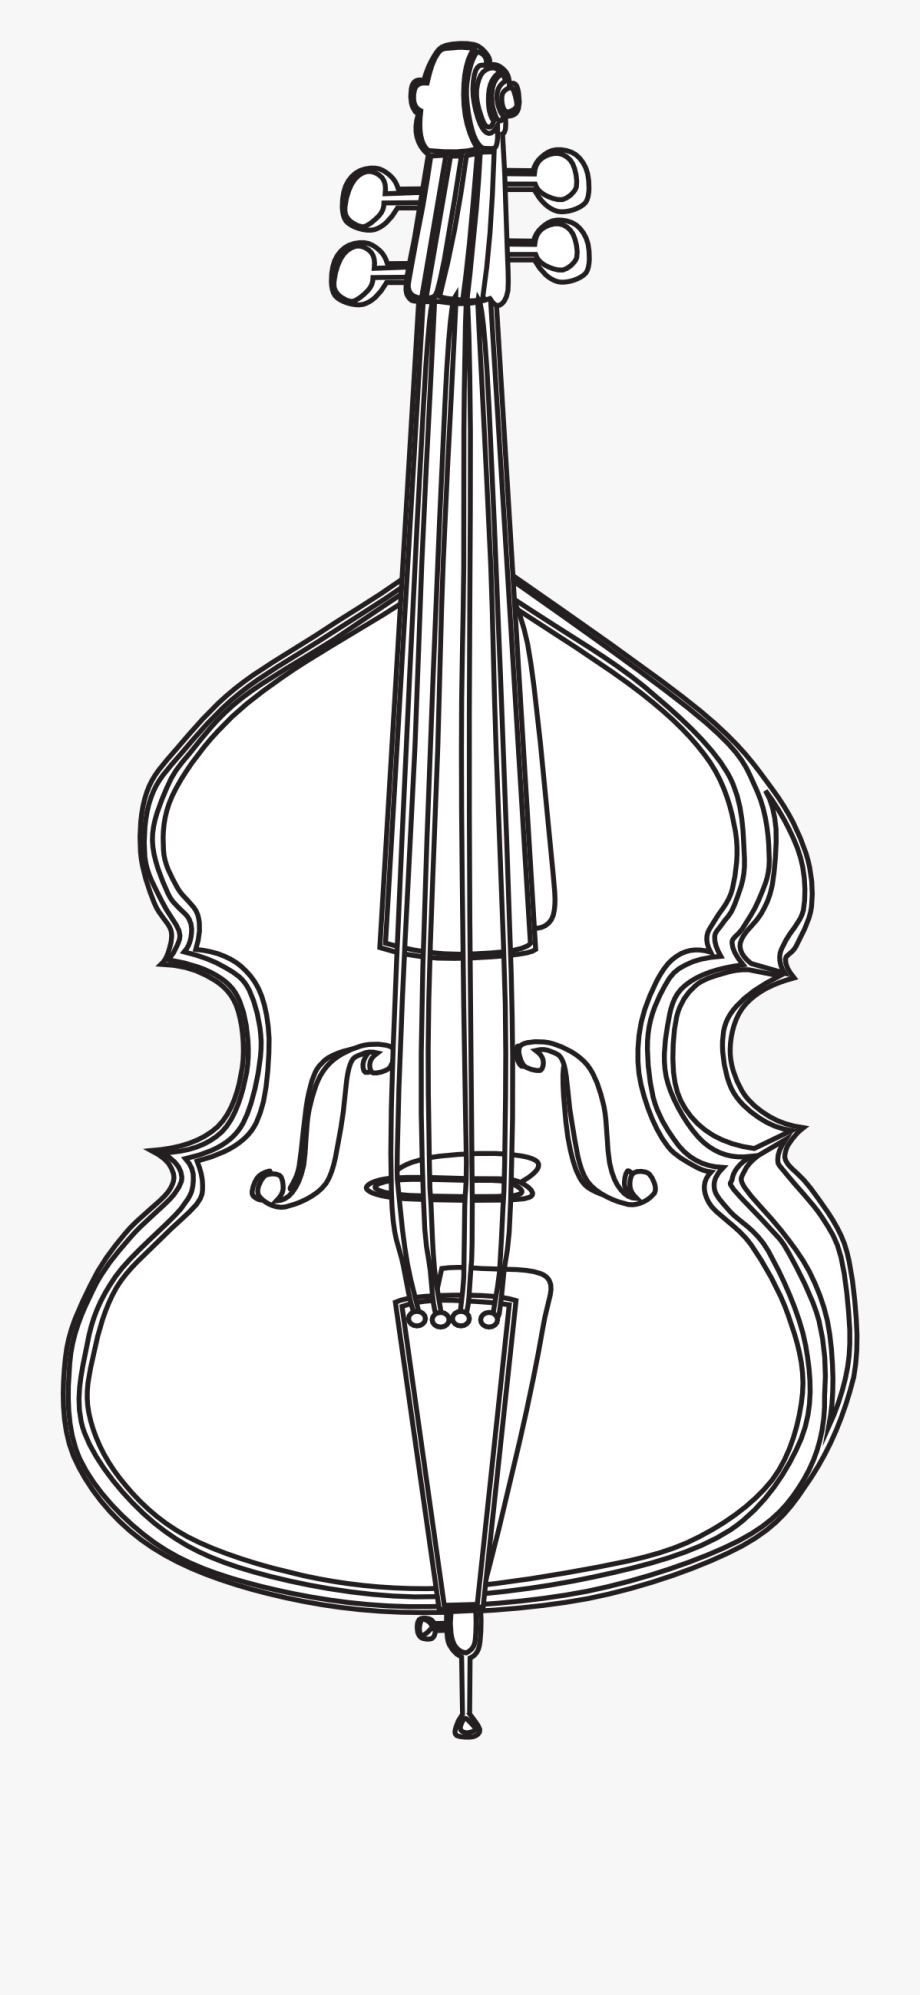 Cello Black And White Clipart Uploaded By The Best.